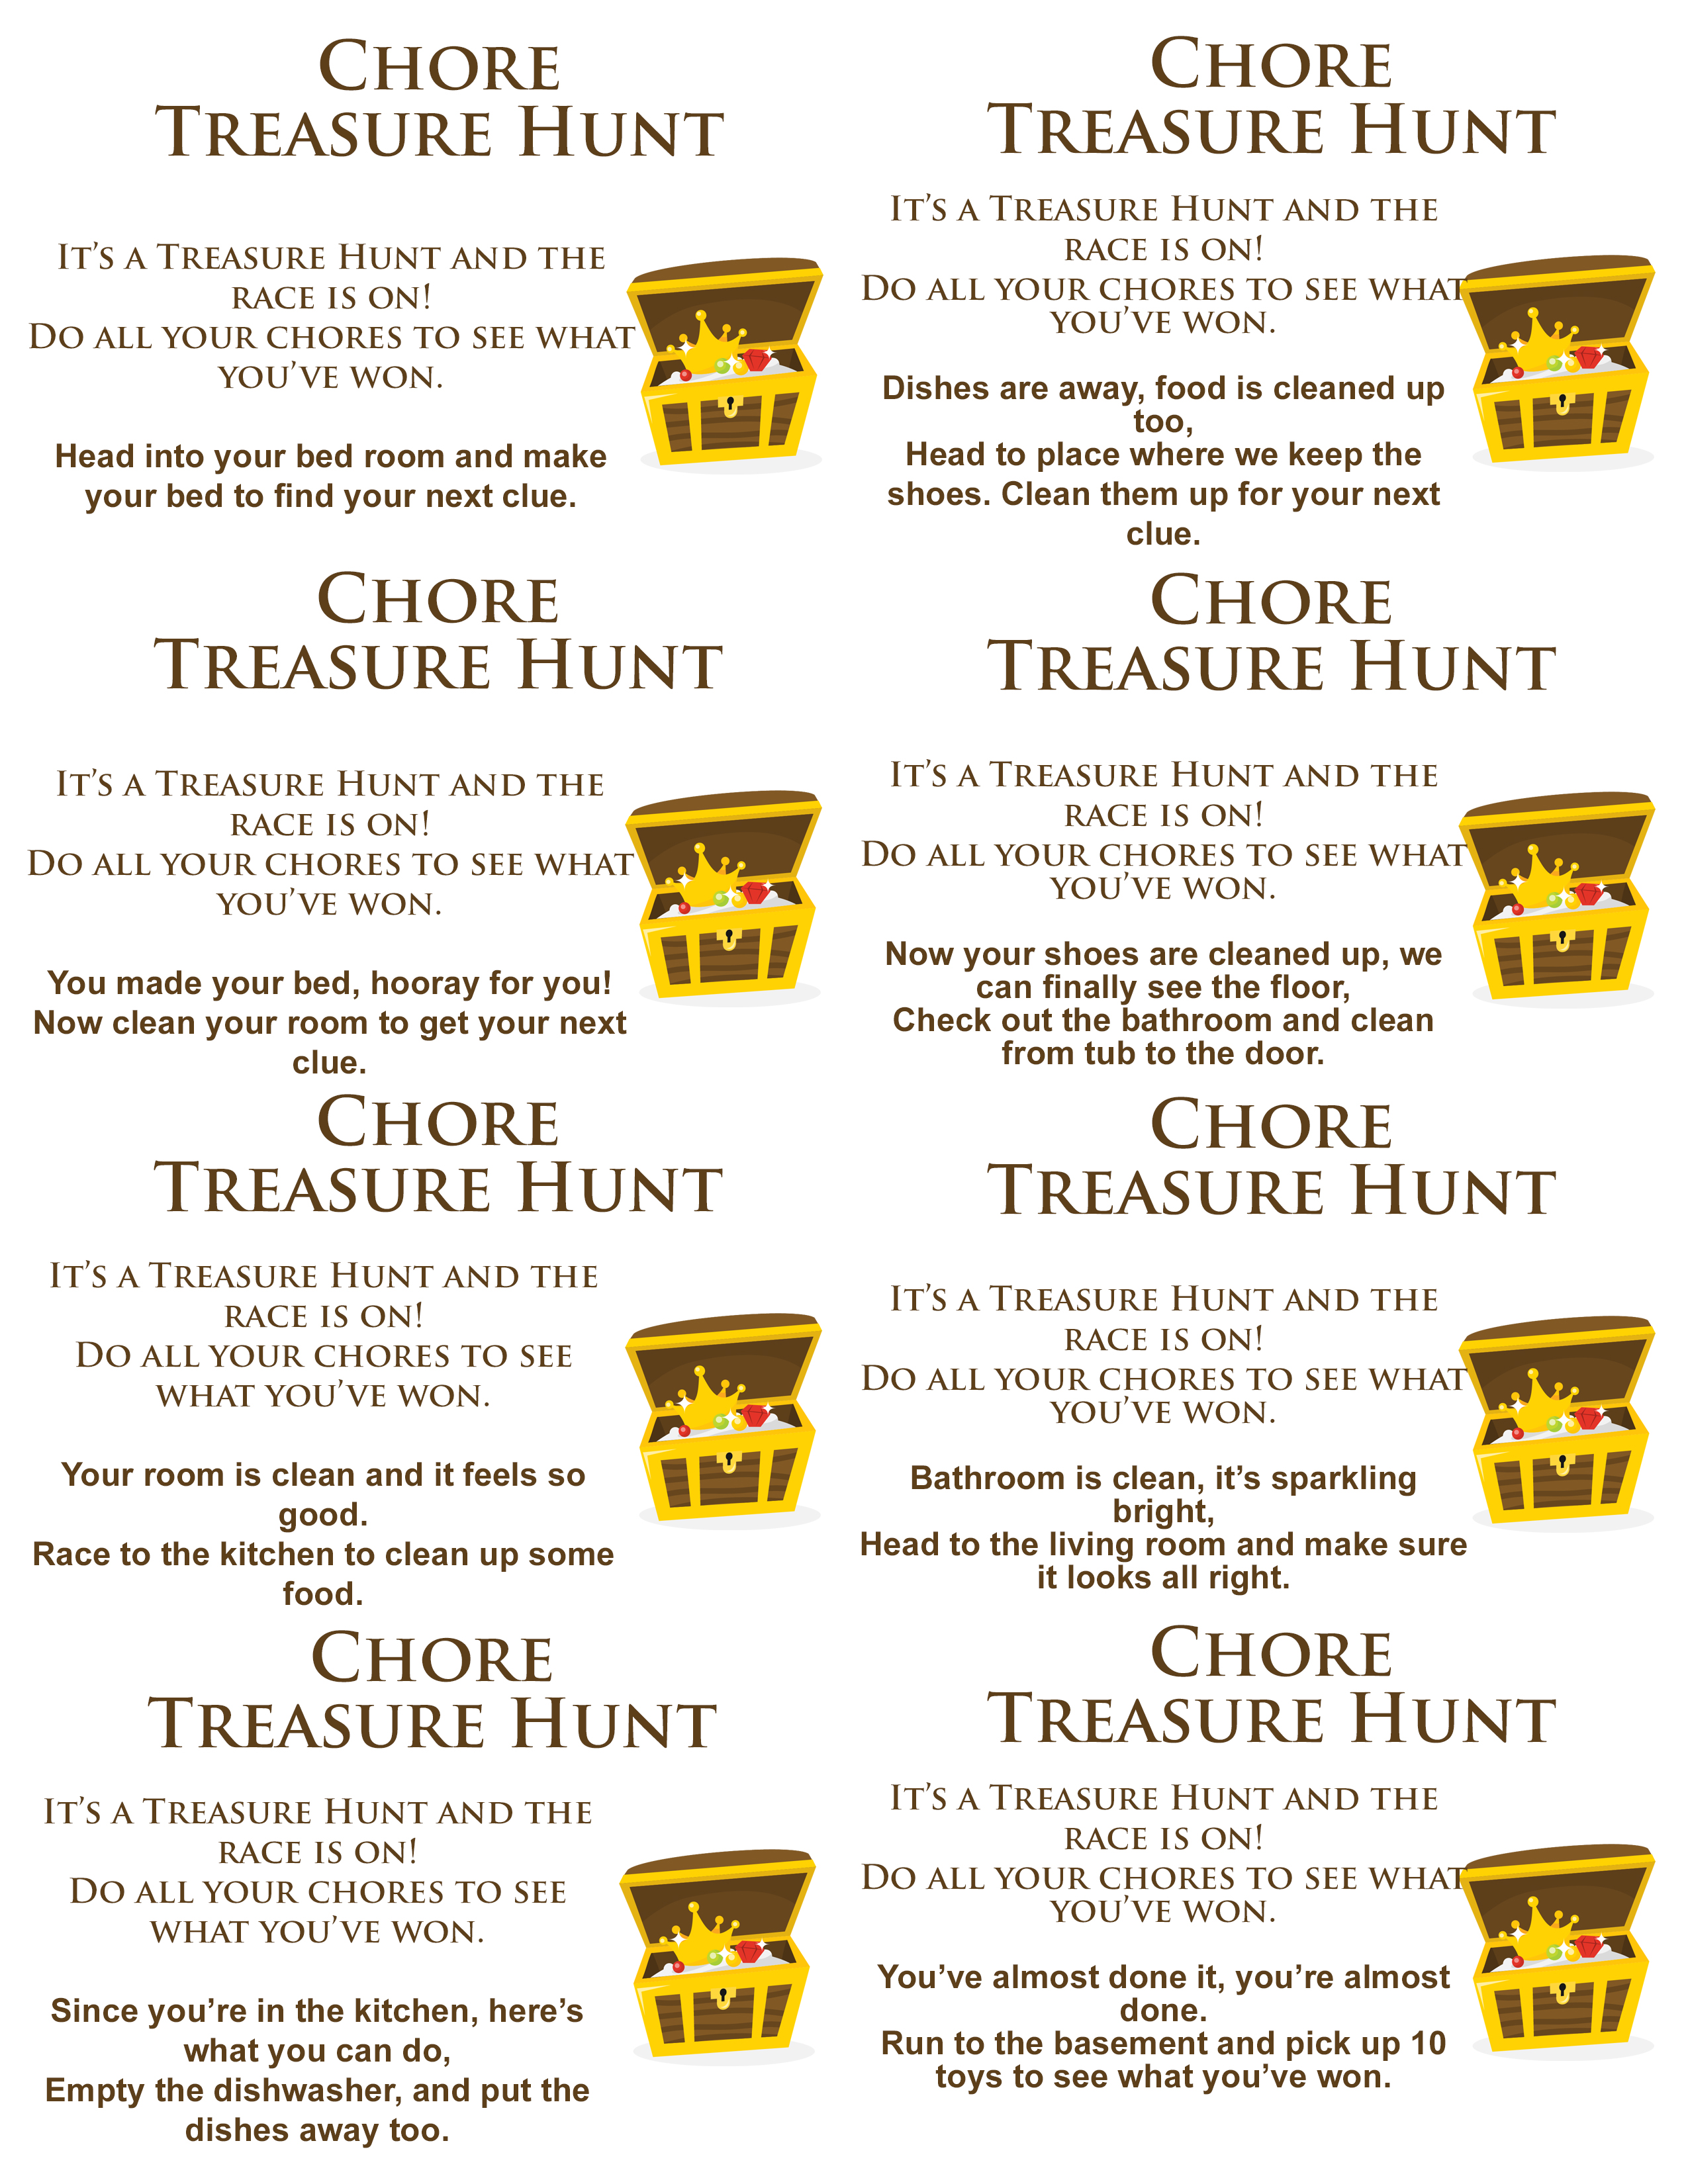 photograph relating to Printable Treasure Hunt Clues identified as Chore Treasure Hunt - The Composing Chicks